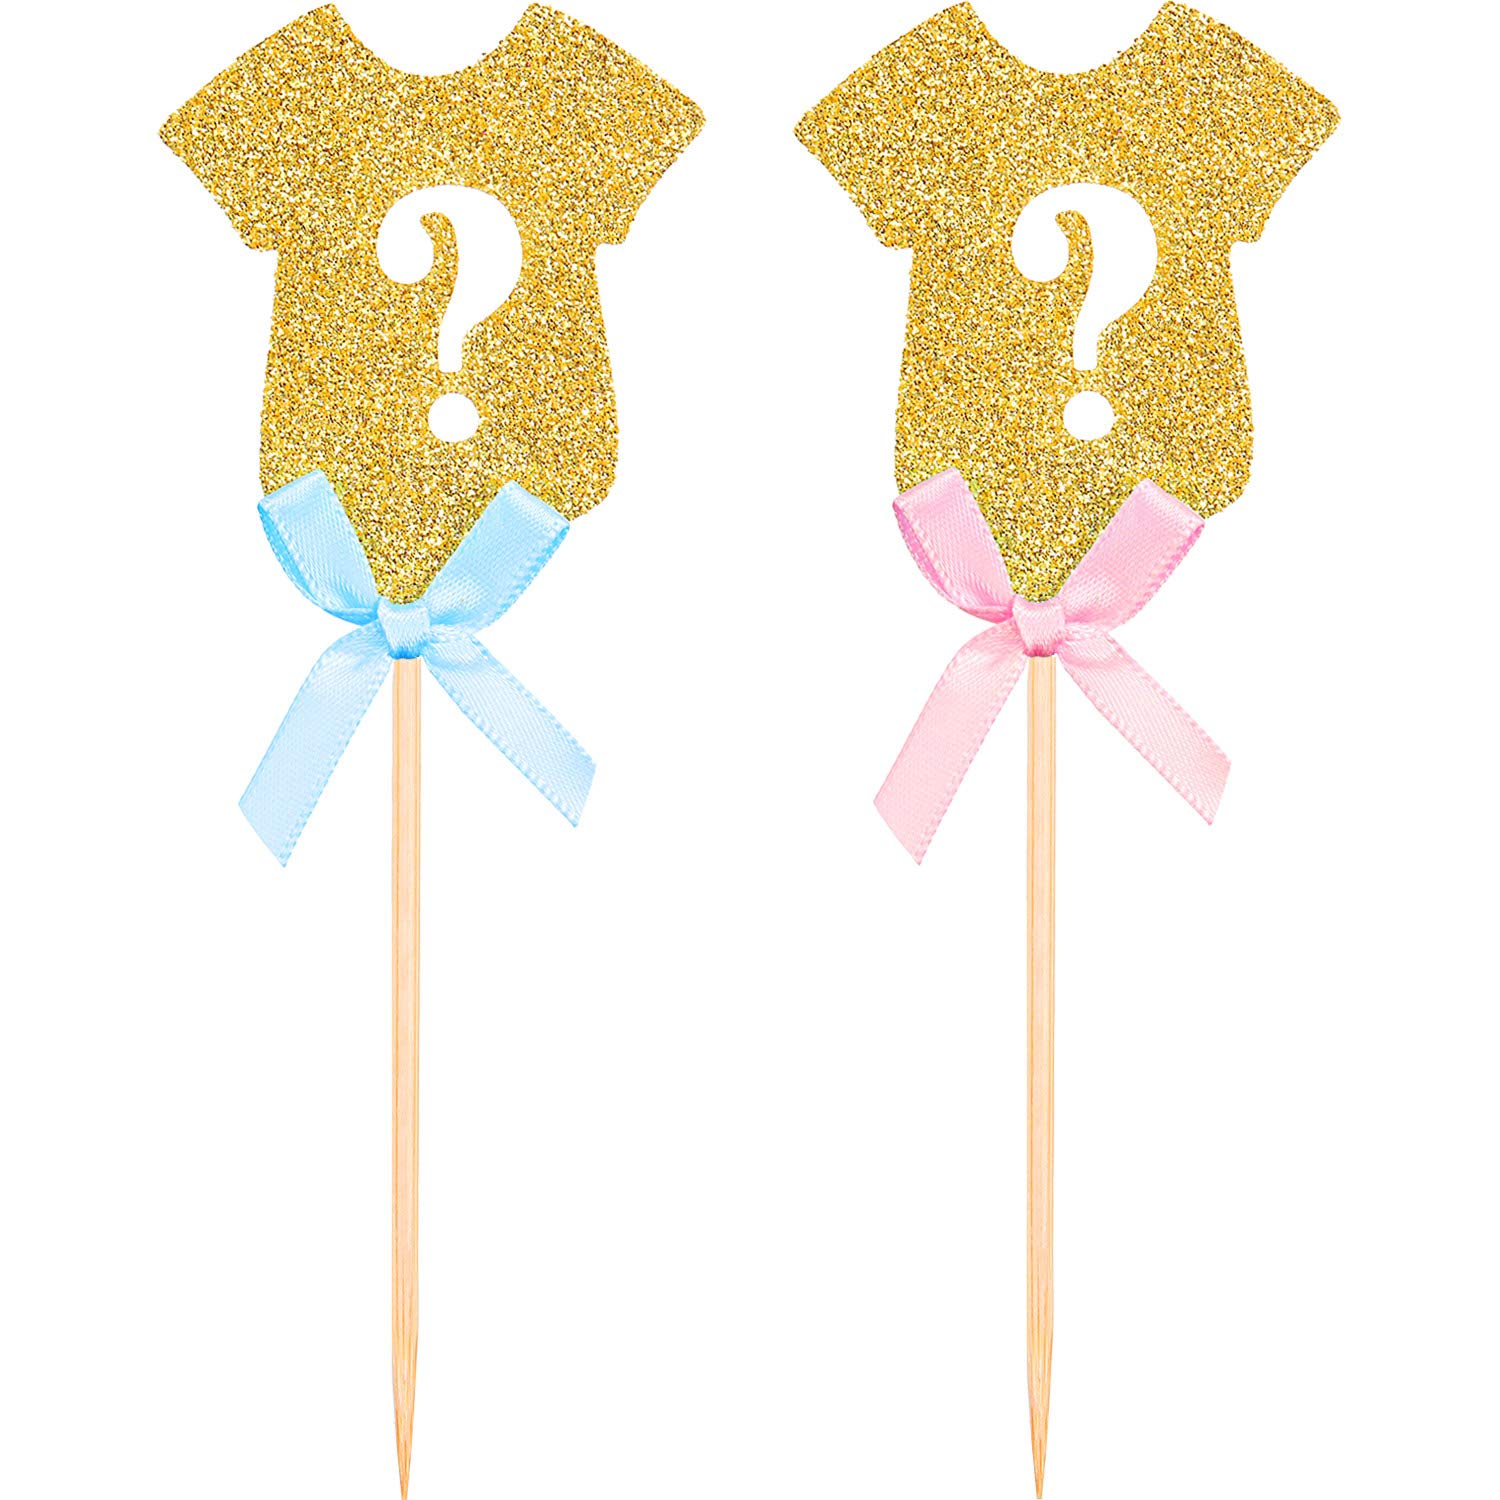 Maxdot 48 Pieces Glitter Gender Reveal Cupcake Toppers Gender Reveal Baby Shower Party Supplies Cake Decorations